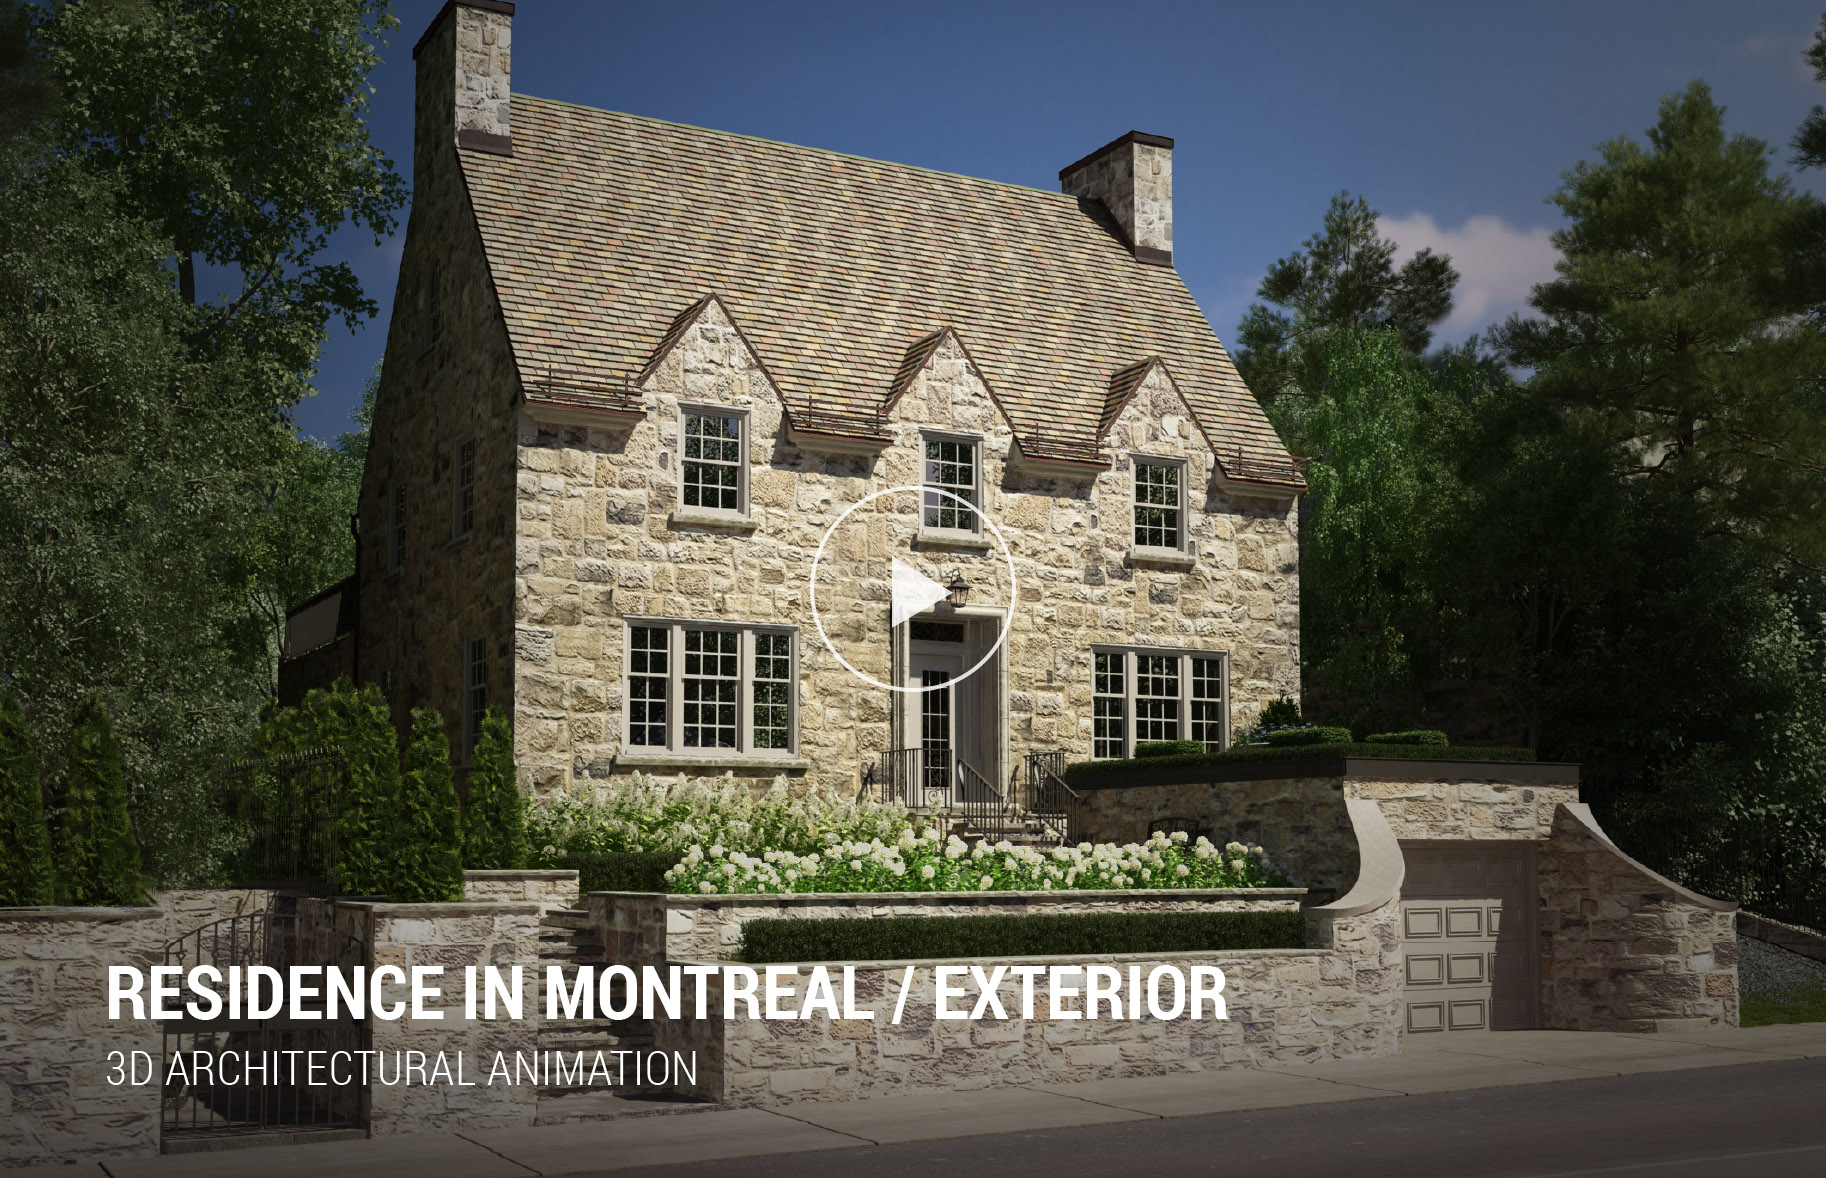 Schema Dimitra Chrona designer, creative director, architectural, 3D visualization, 3D Rendering, branding websites, digital, graphic design, interior design, real estate, luxury property, staging, museum, virtual, art, brochures, exhibitions, logotype, logo, Canada Quebec Montreal Athens Greece schema design residence montreal exterior video large over.jpg